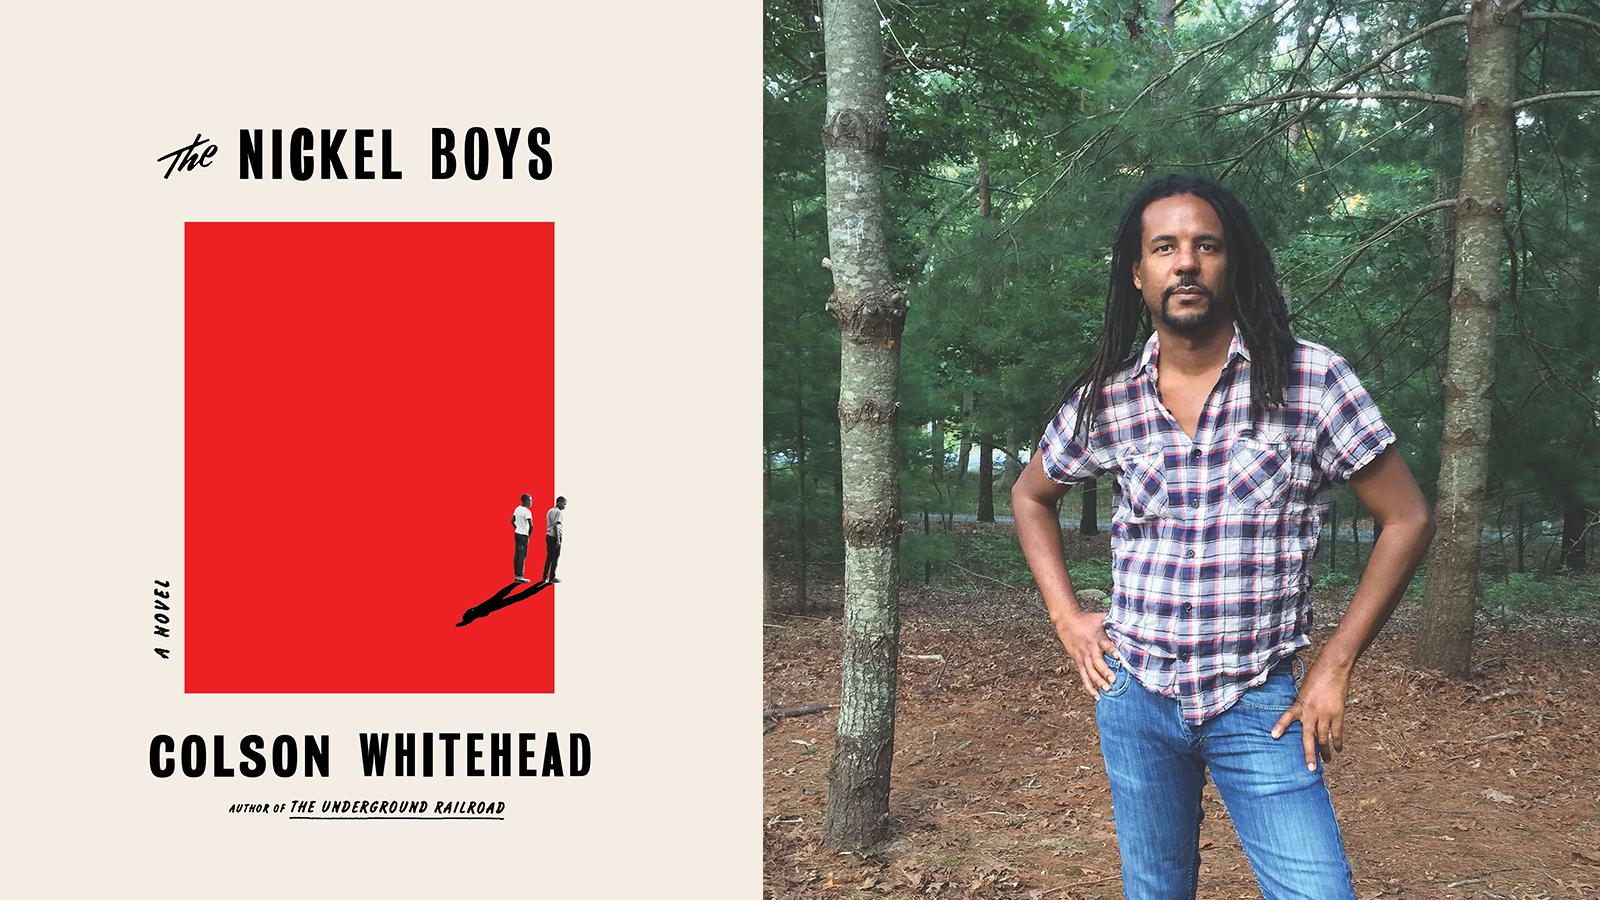 In Colson Whitehead's 'The Nickel Boys,' an idealistic black teen learns a harsh reality